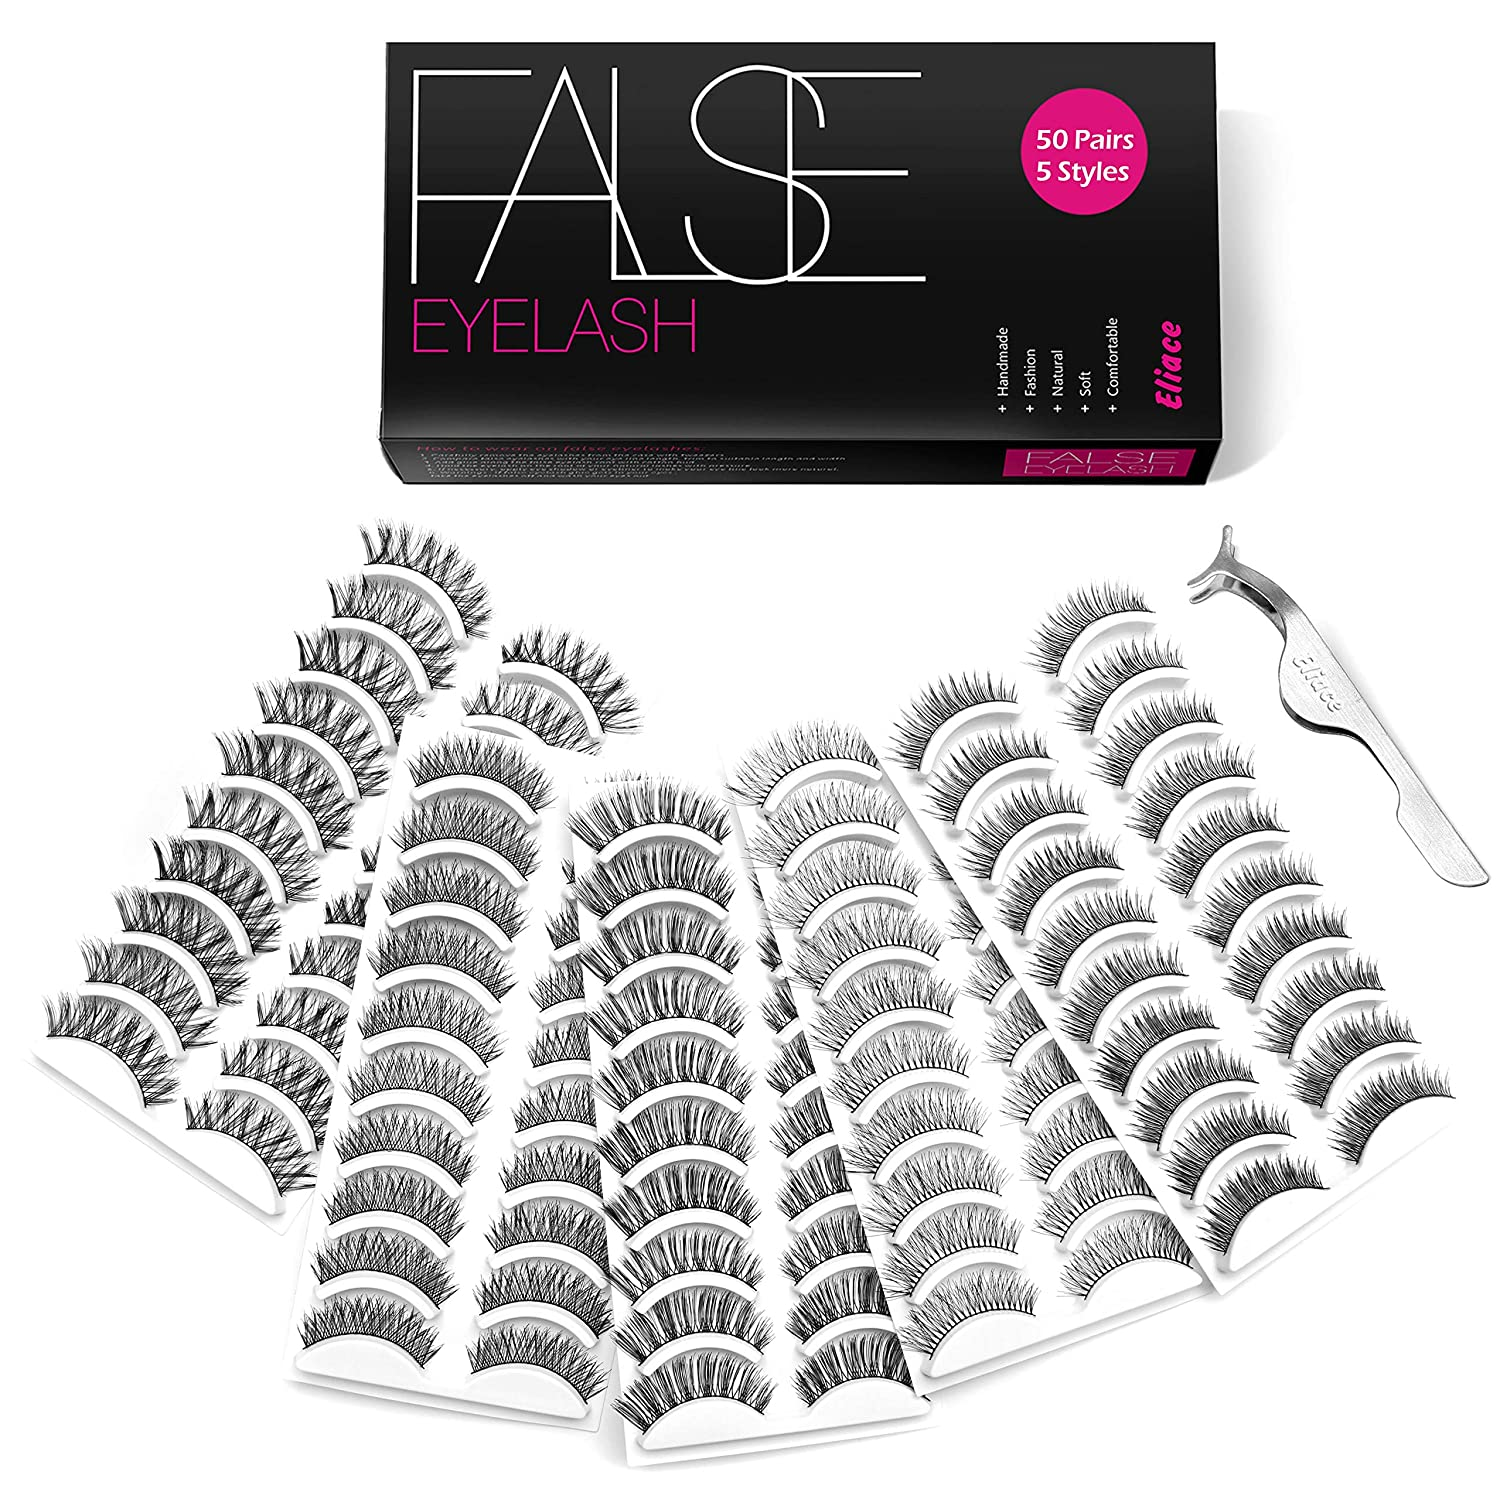 Eliace false eyelashes 50 pairs - Best false lashes for Asian eyes